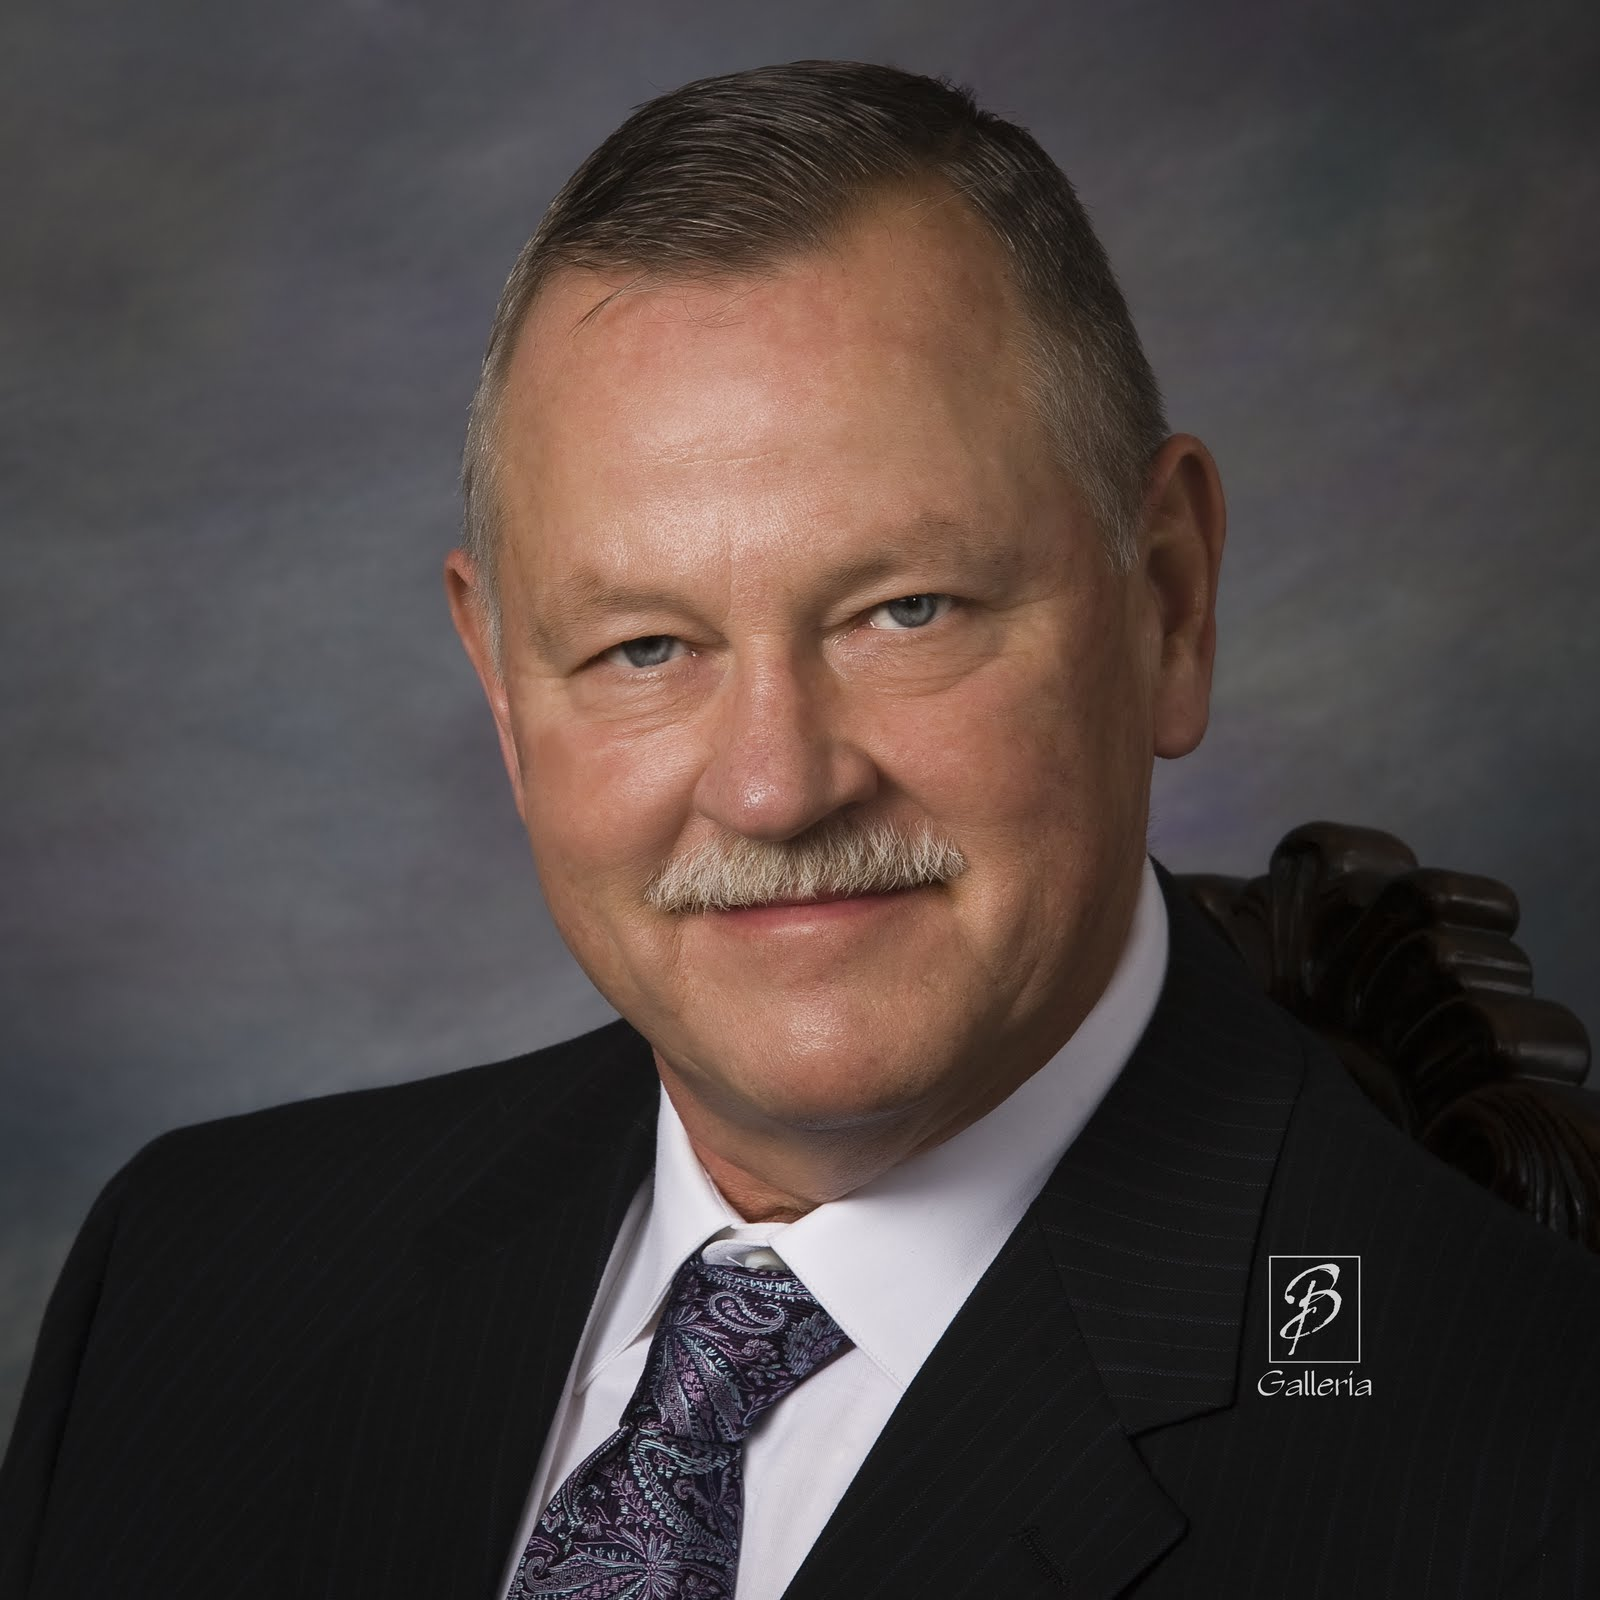 Capital Orthopaedics and Sports Medicine announces William R Boulden MD FAOSS will begin providing general orthopedic services at Grinnell Regional